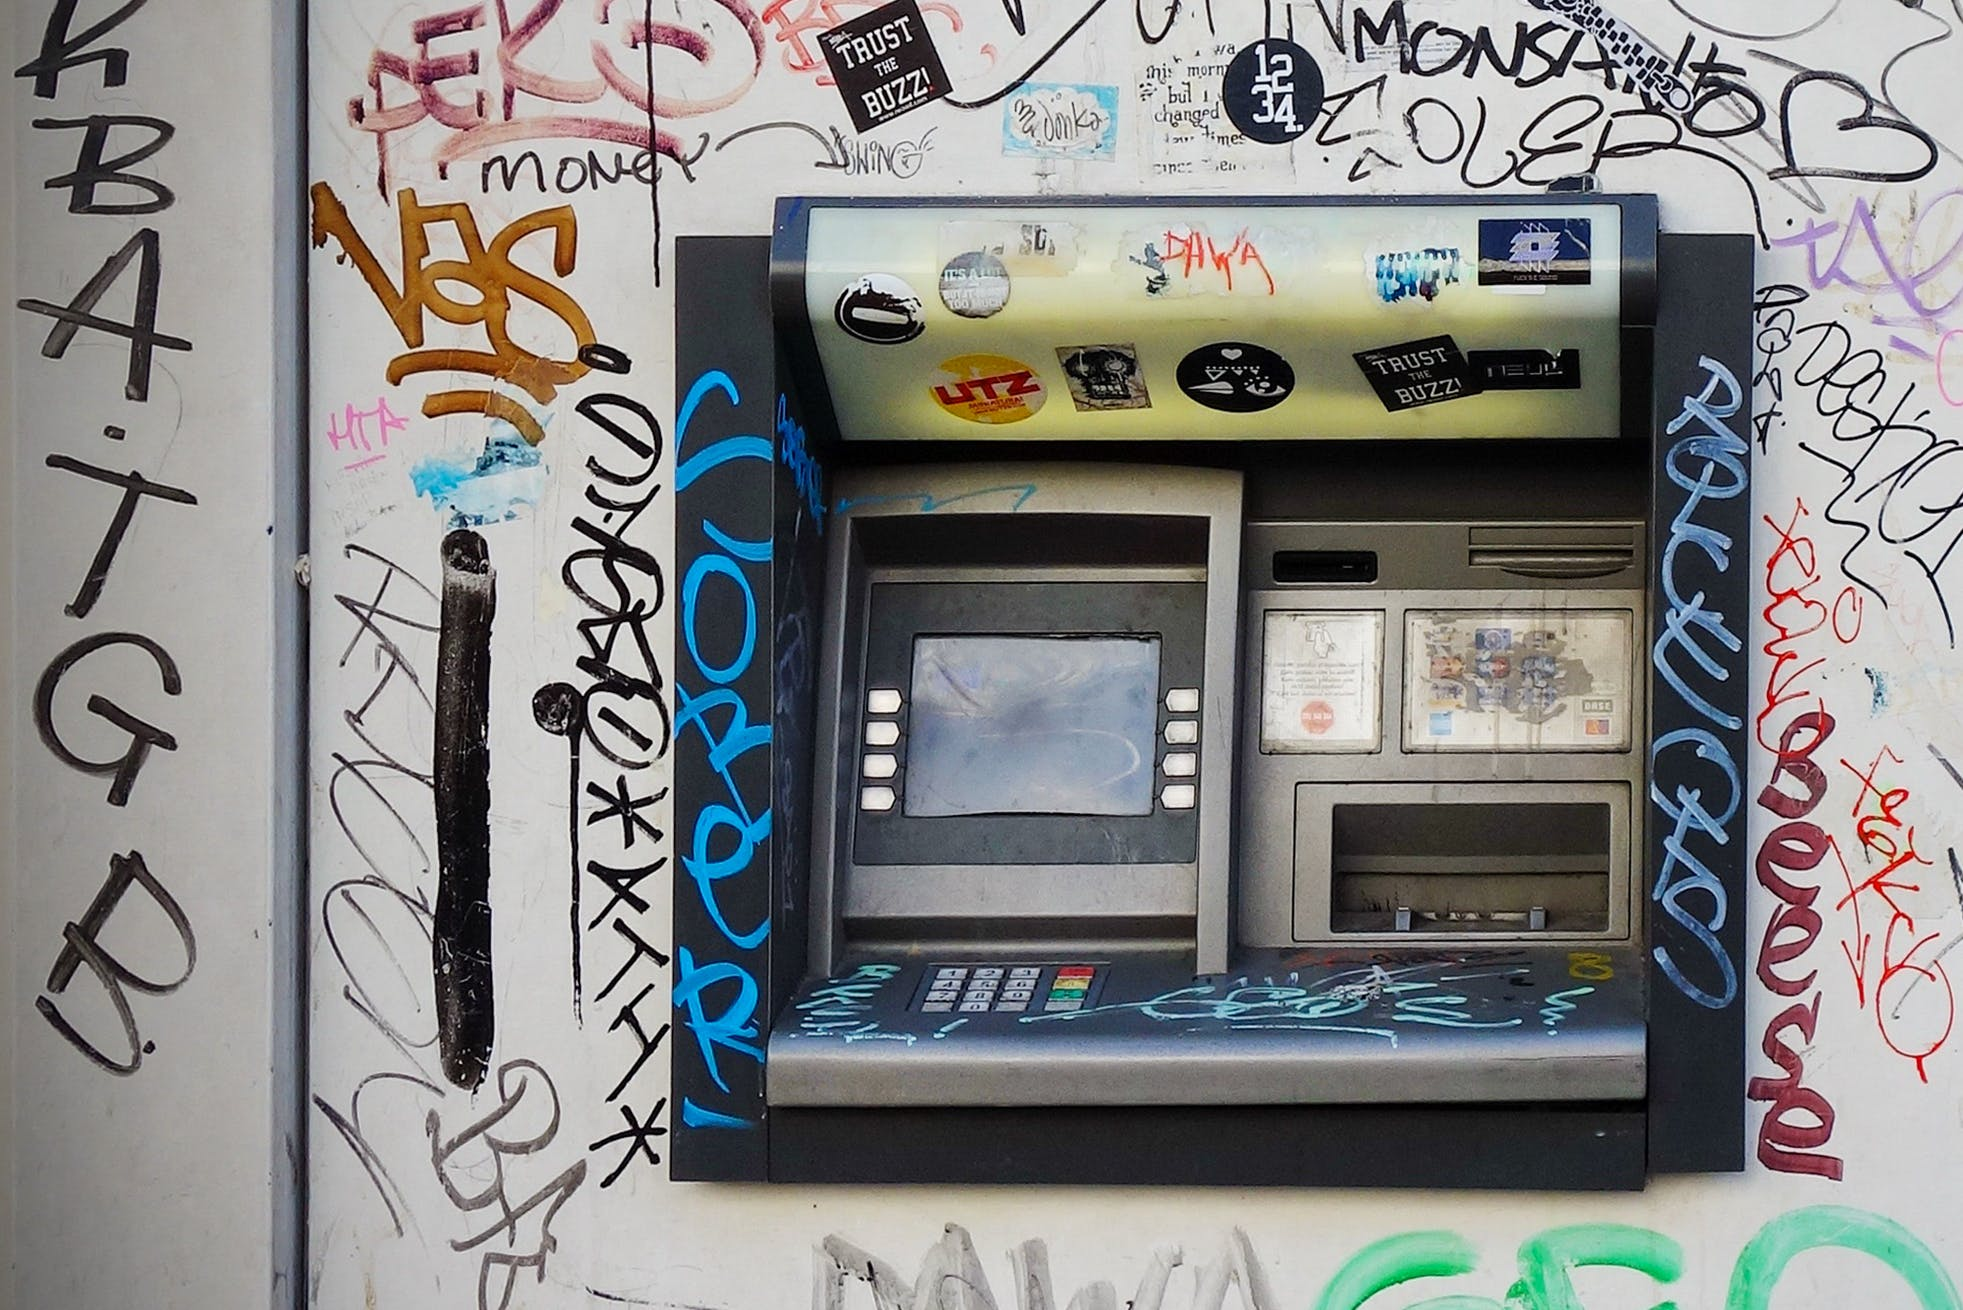 Free stock photo of dirty, wall, machine, atm